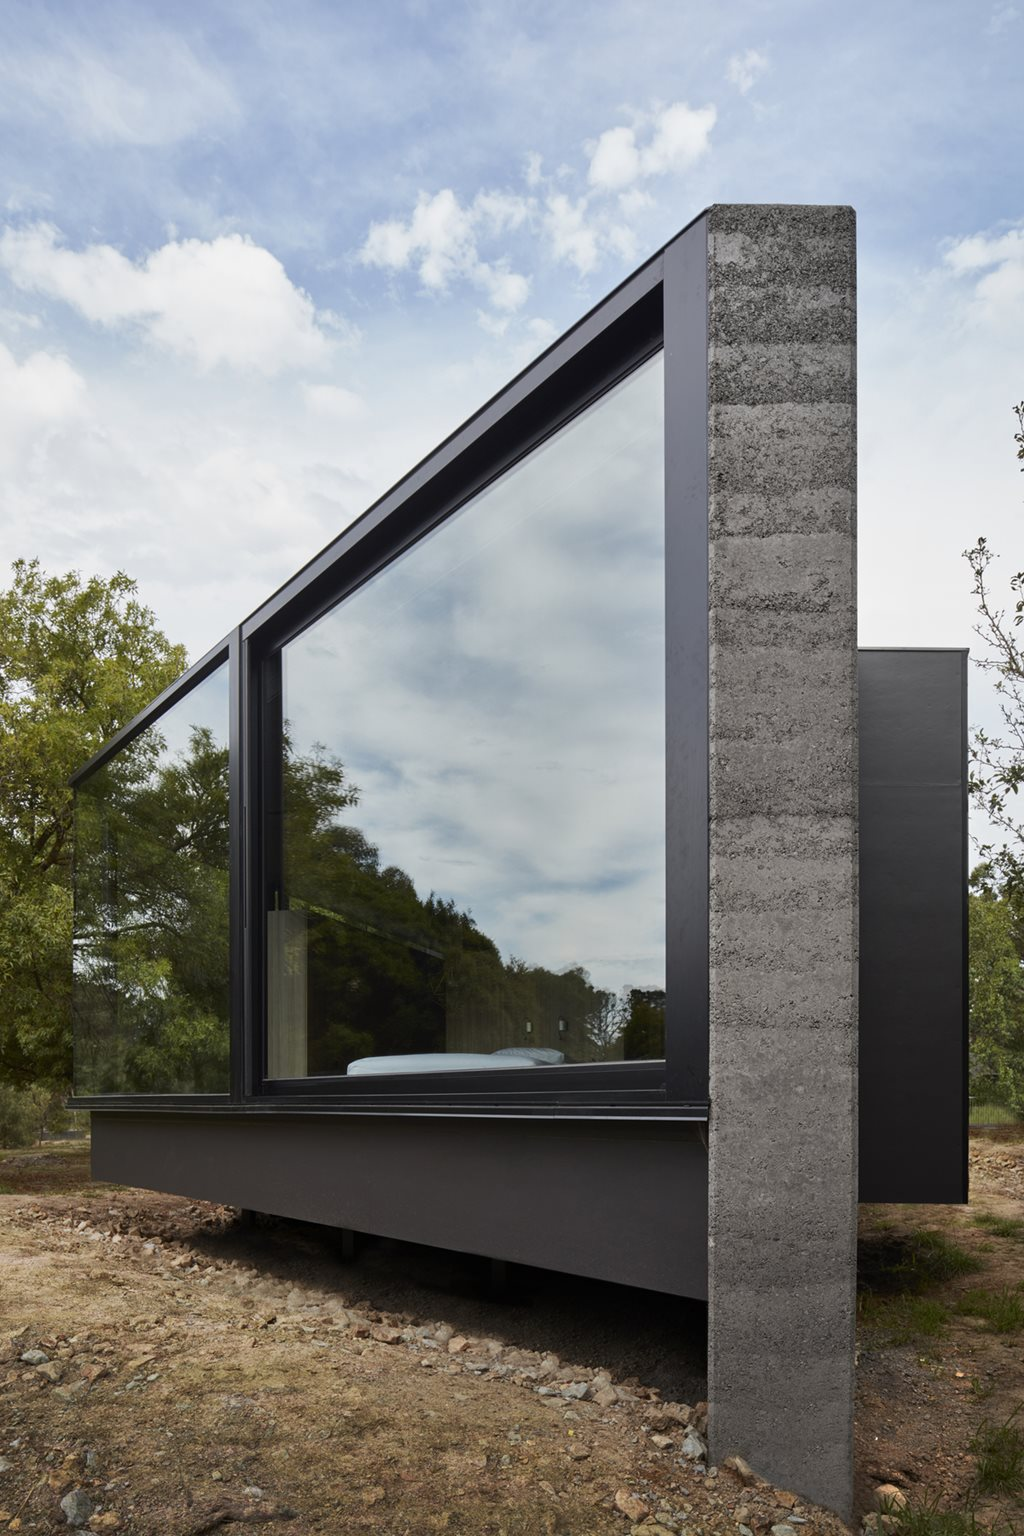 Rammed Earth Addition Slots Between Existing Trees Linking